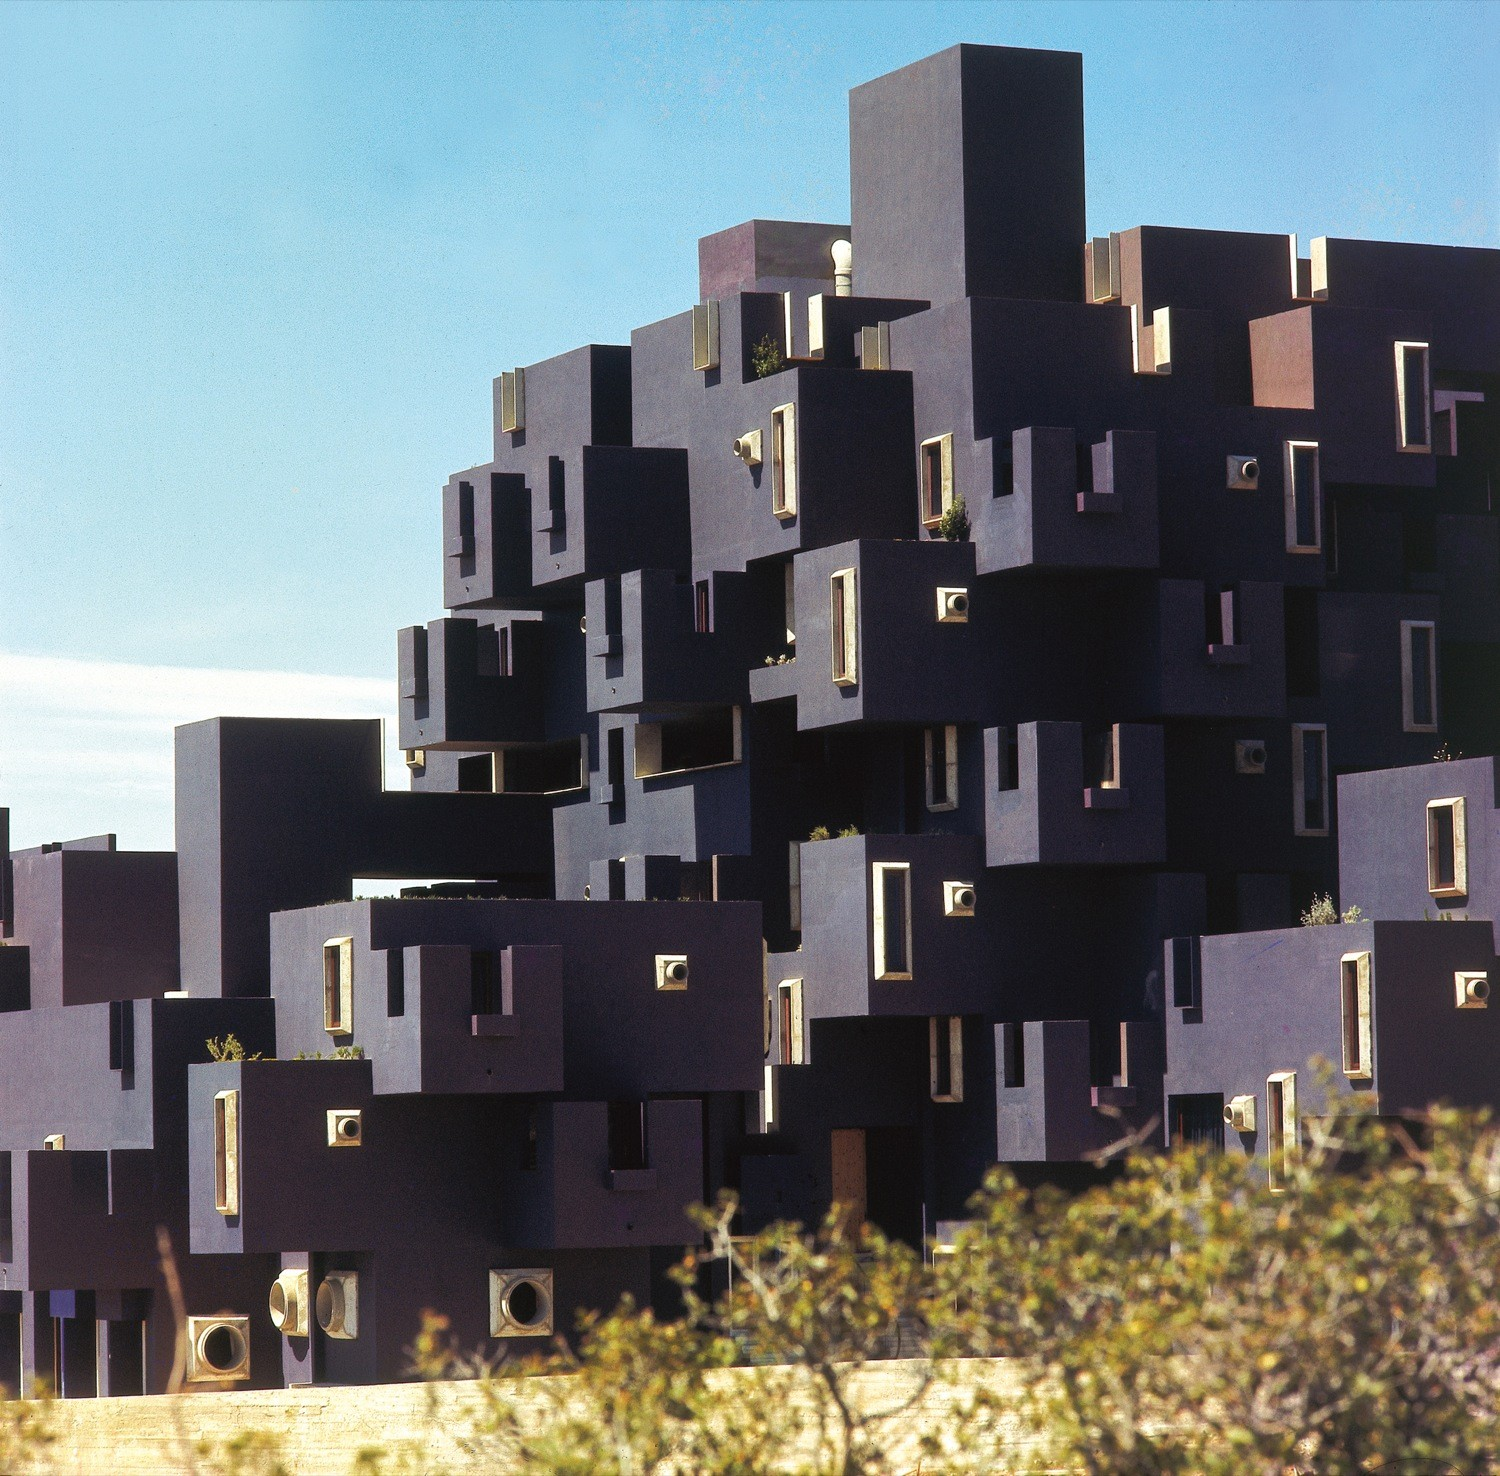 Courtesy of Ricardo Bofill